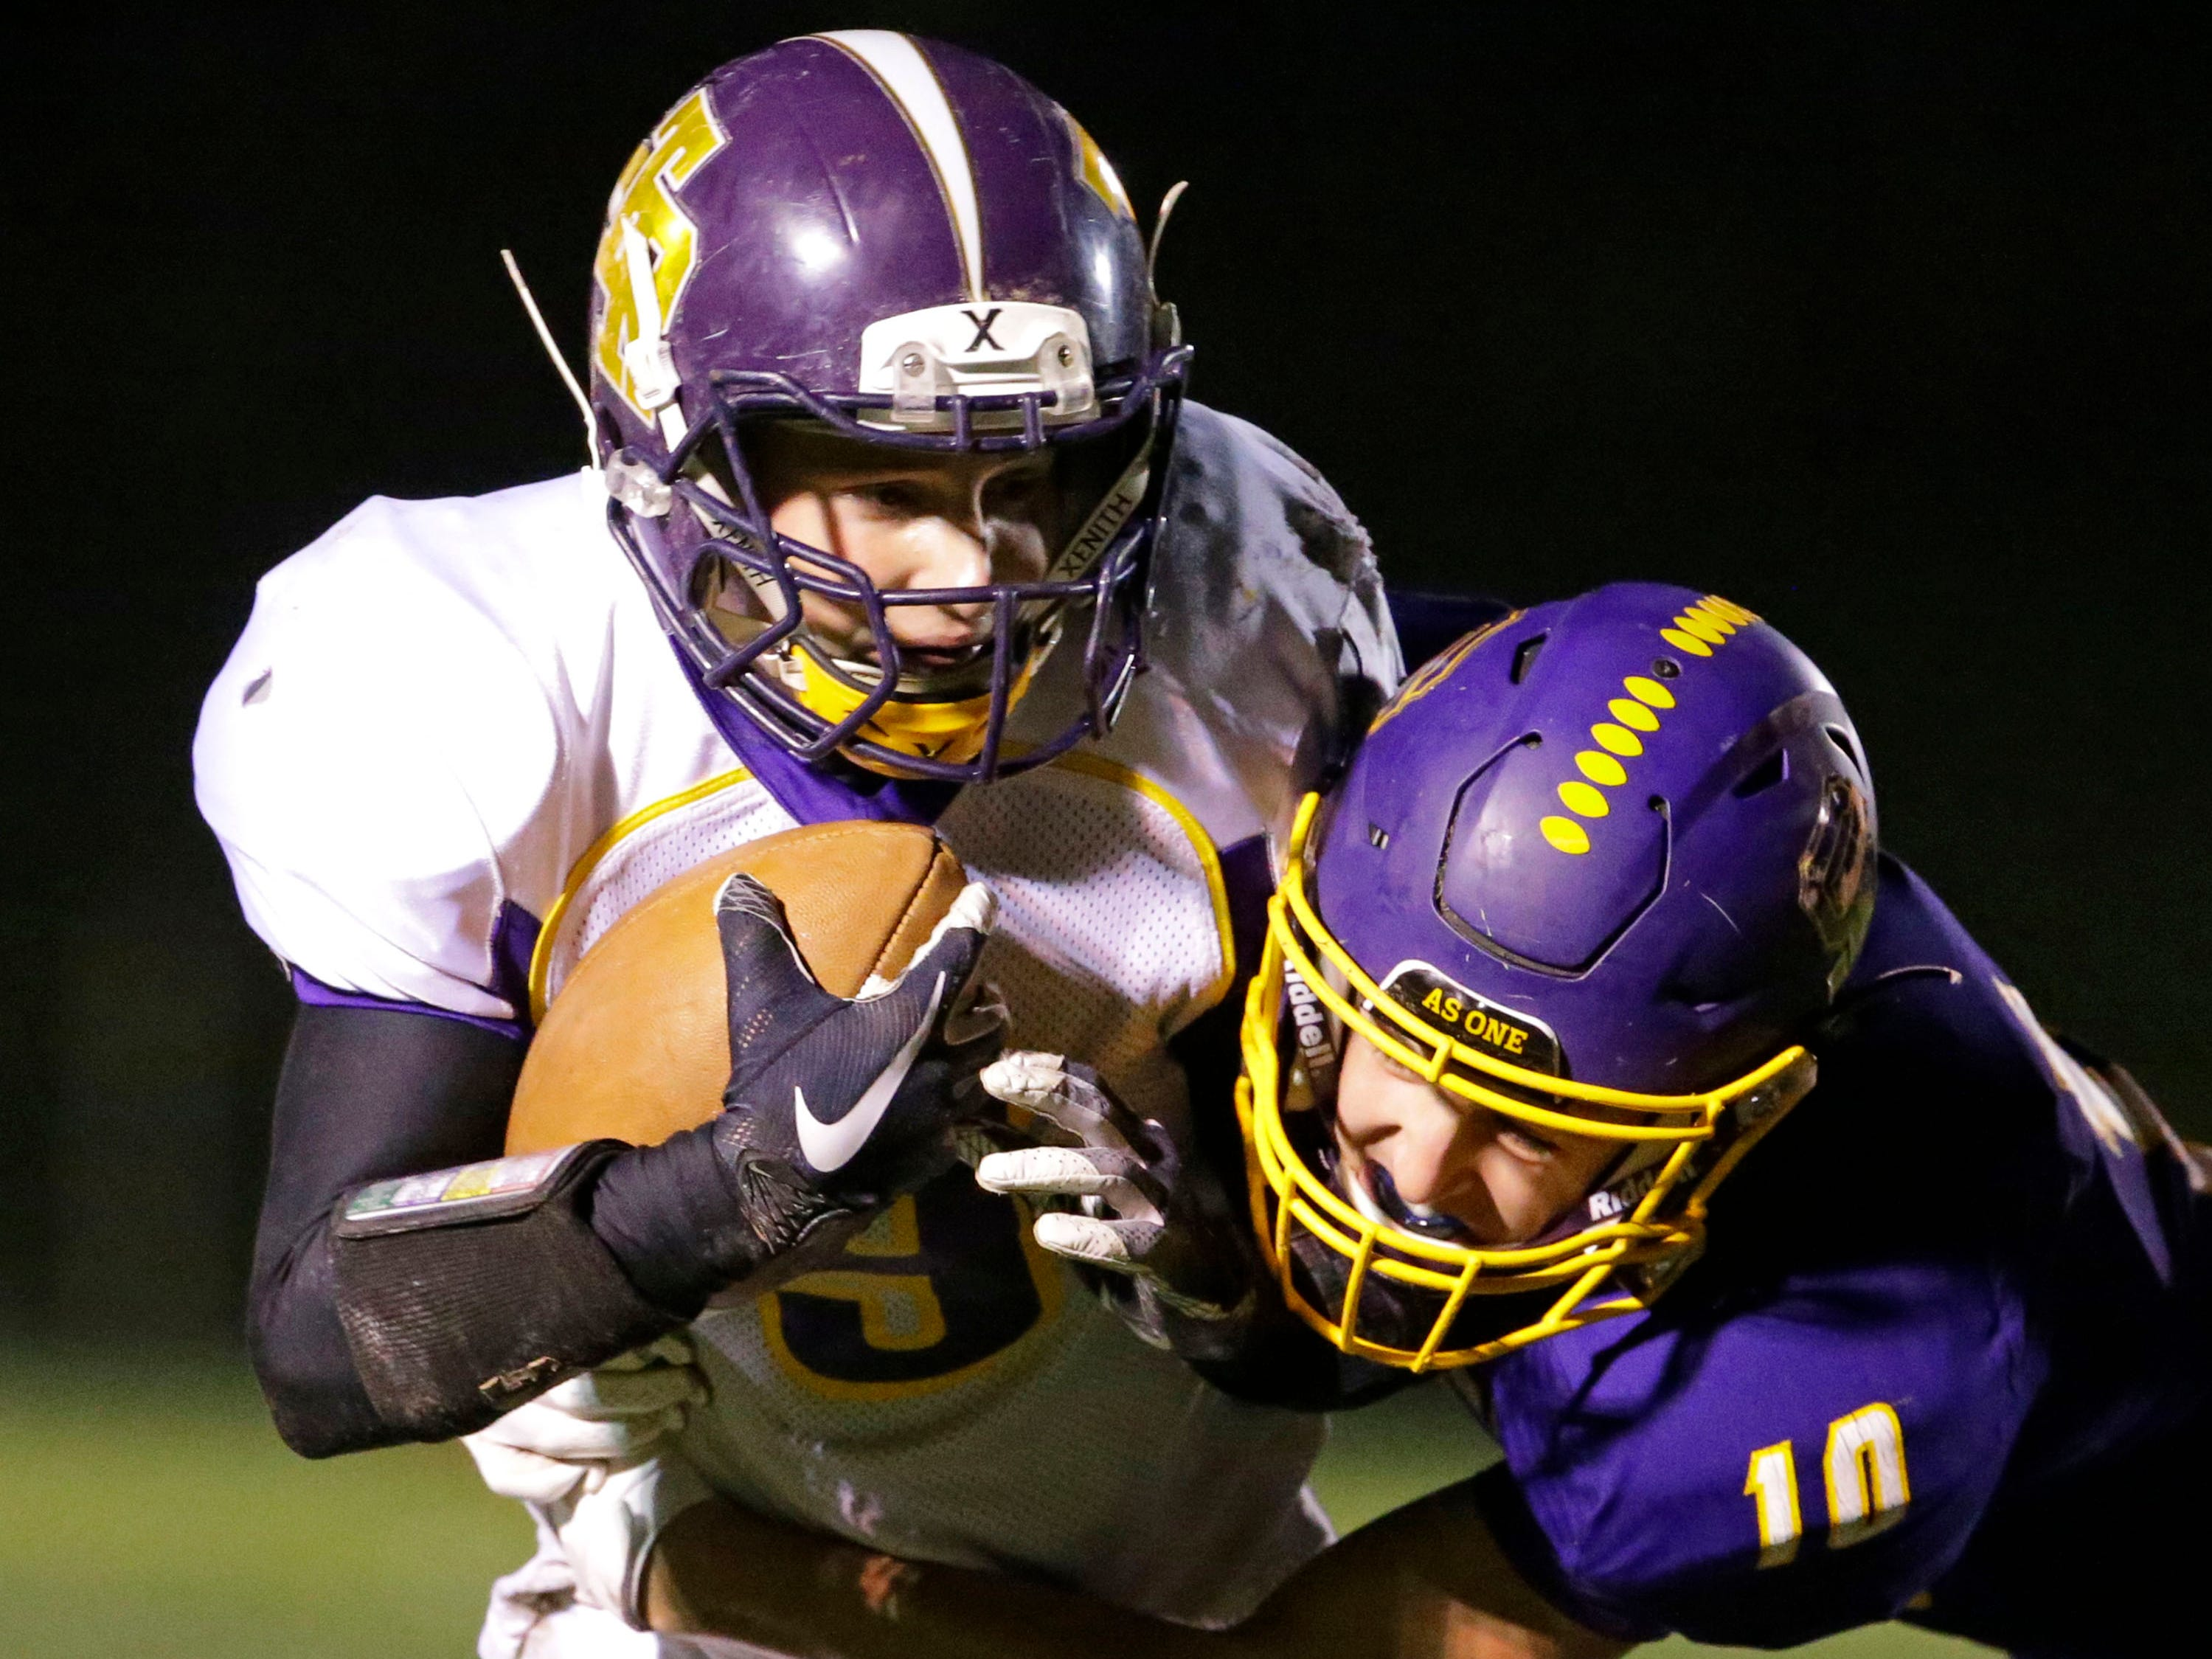 Two River's Carson Koch (9) is gripped by Sheboygan Falls' Justin Tenpas (10), Friday, October 12, 2018, in Sheboygan Falls, Wis.